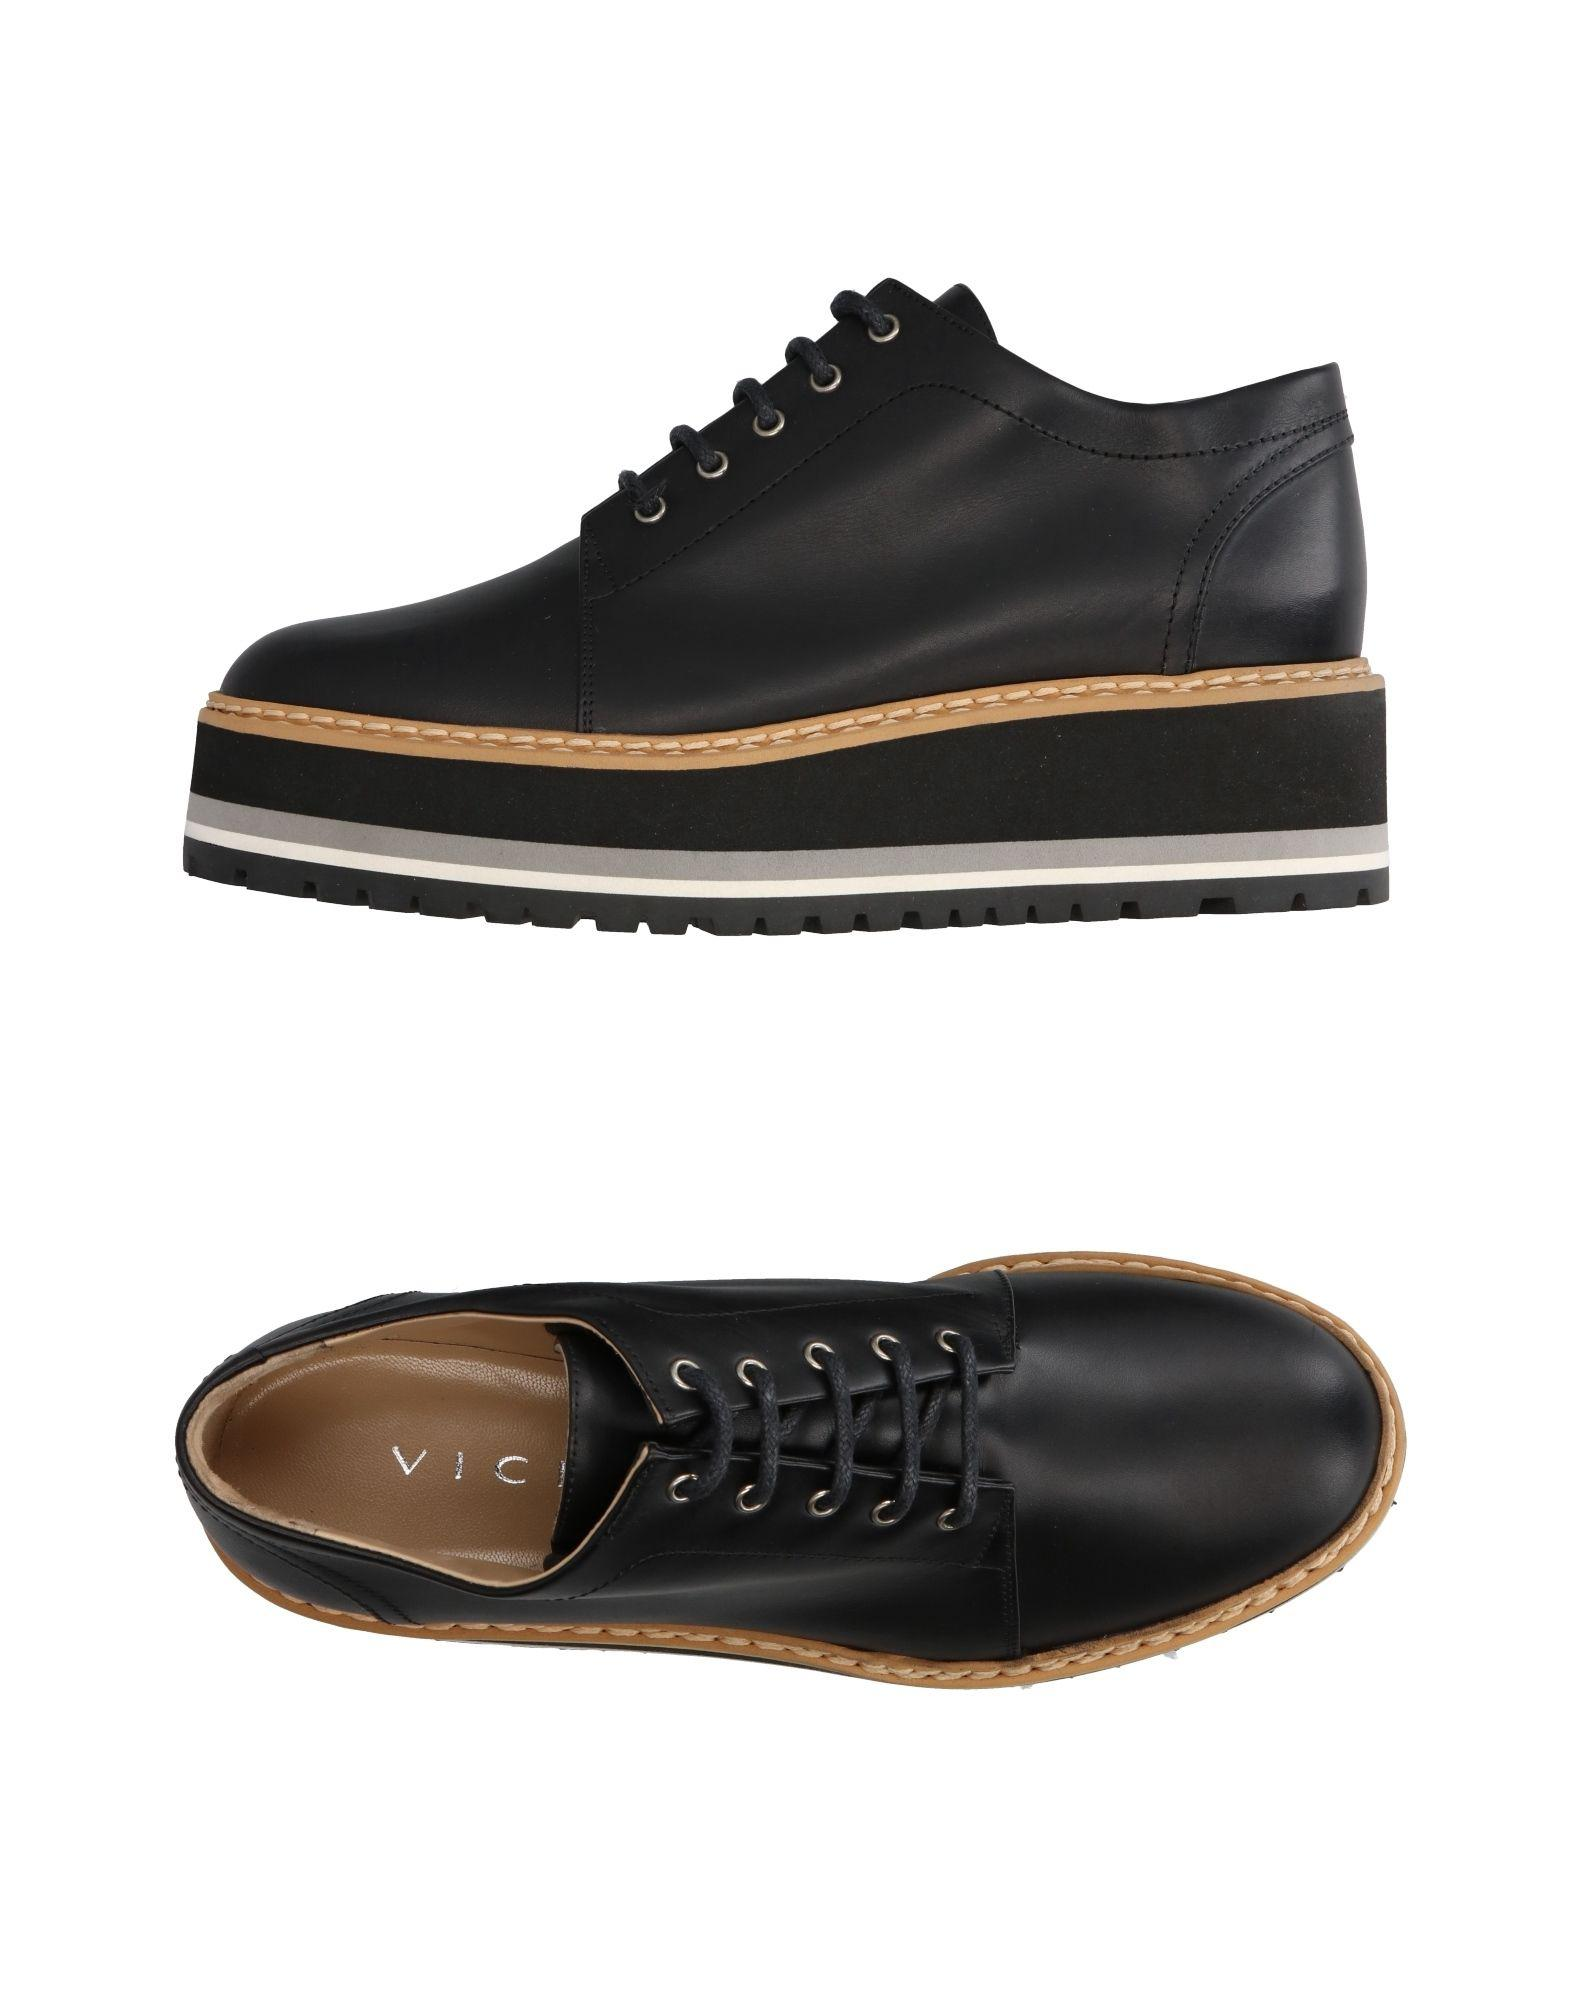 Top Quality Cheap Online Buy Online Outlet FOOTWEAR - Lace-up shoes Vicini bao63X